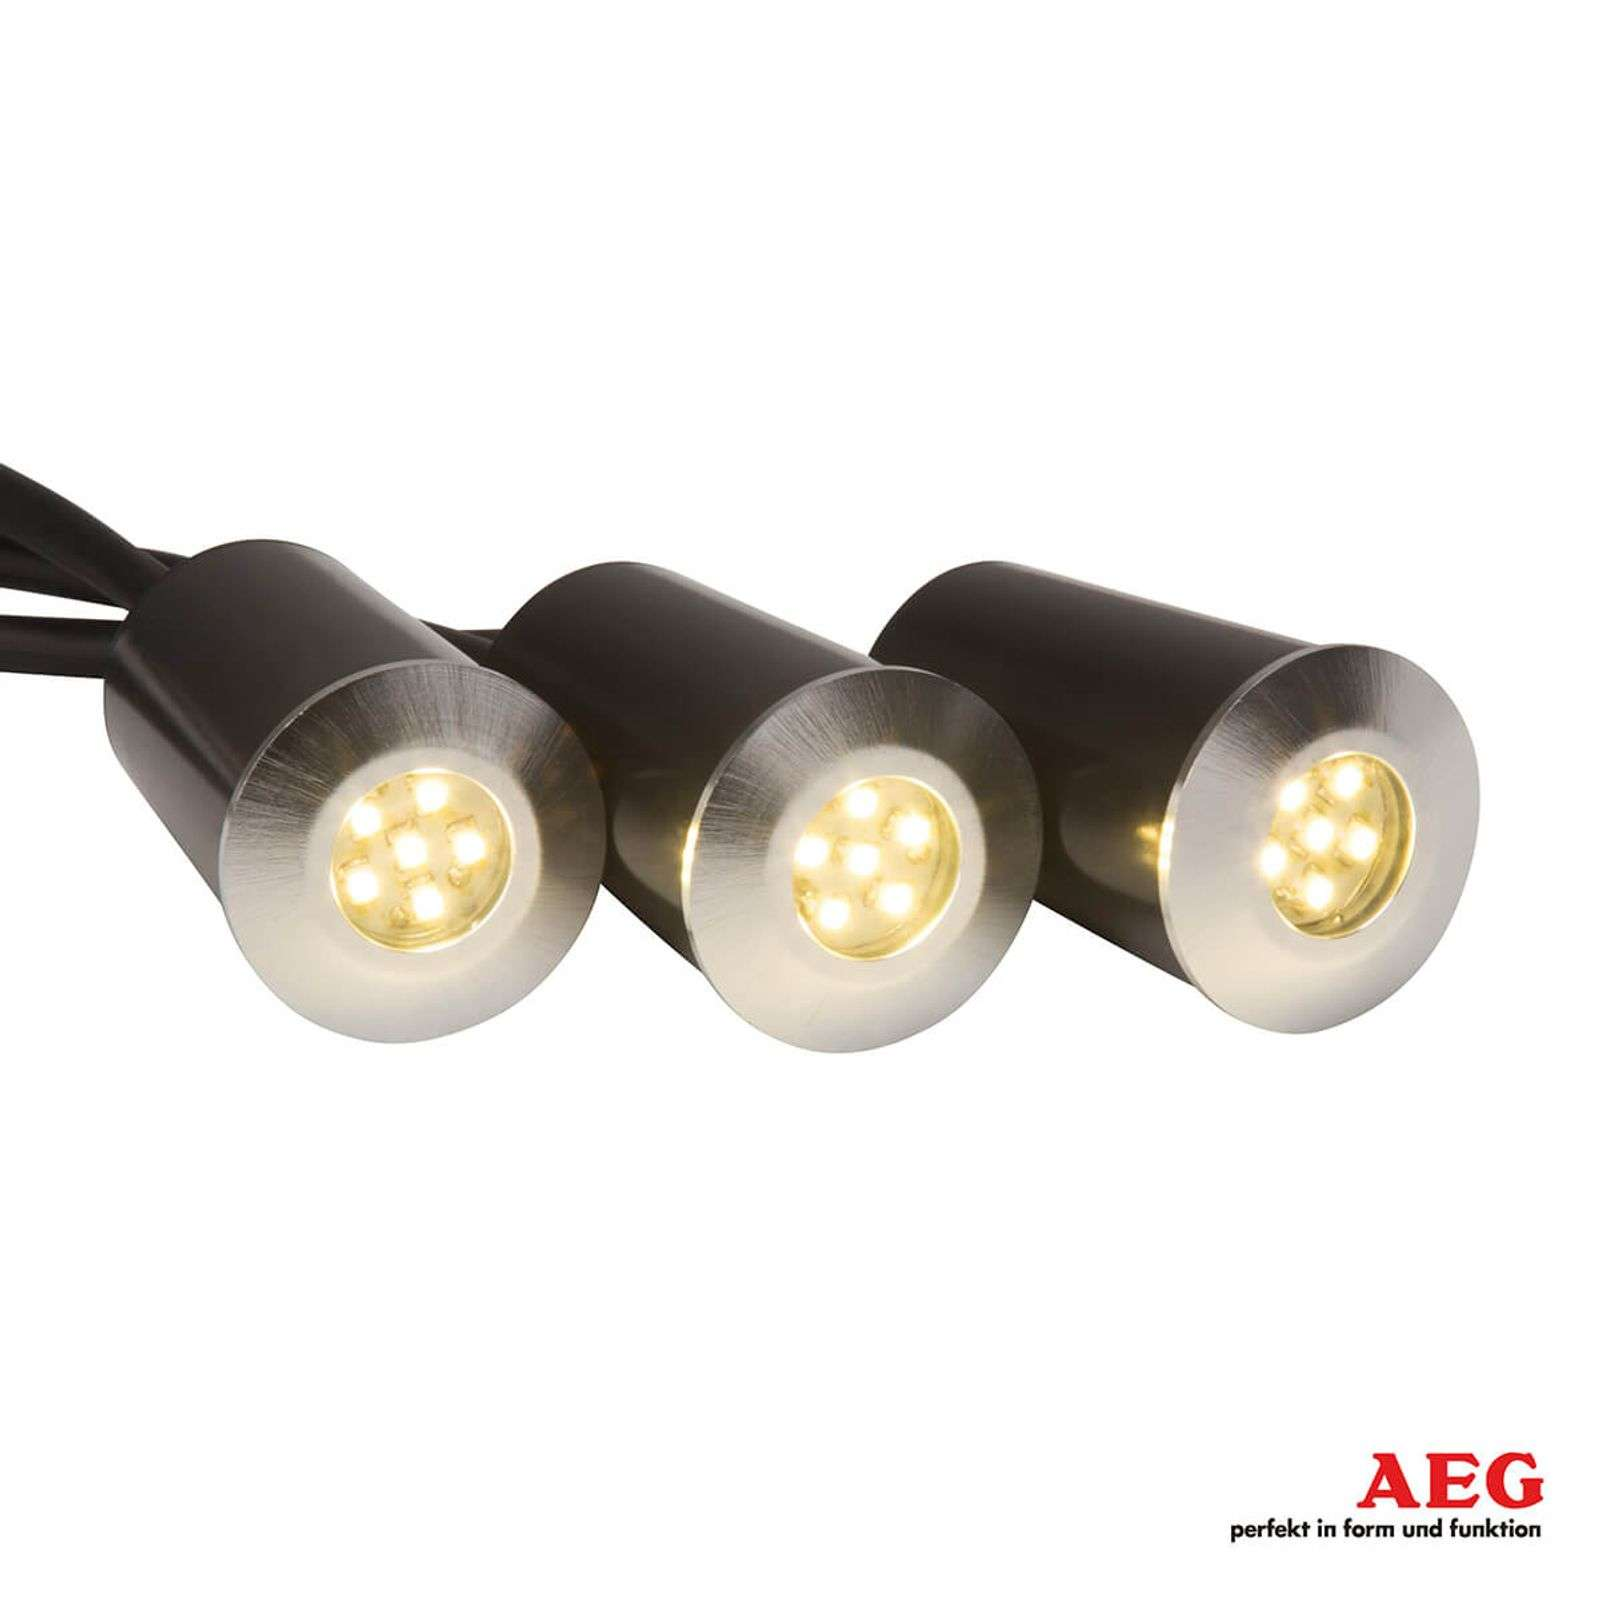 Albedo - LED grondspot inbouwlamp set van 3